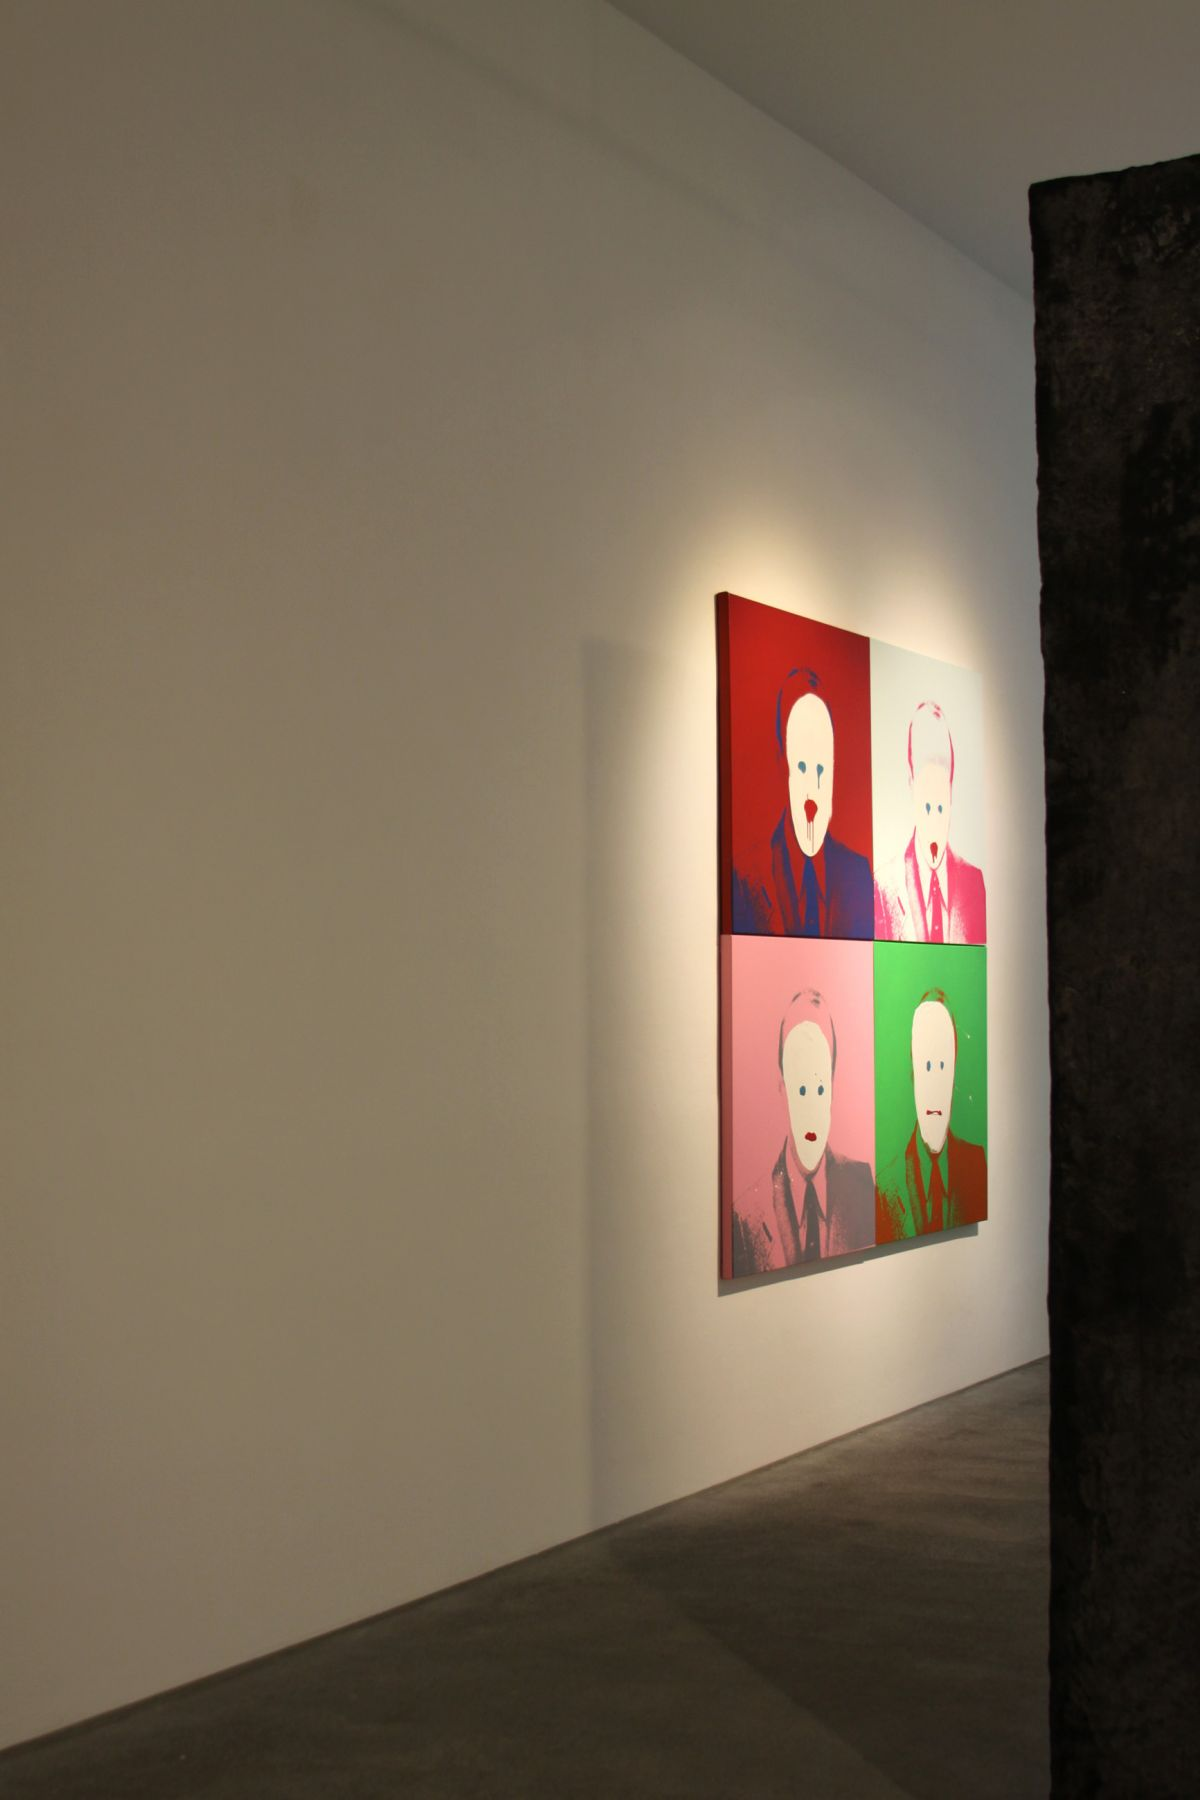 Installation view, The Bruce High Quality Foundation, The Retrospective: 2001-2010, â€‹Galerie Bruno Bischofberger, Zurich, 2010